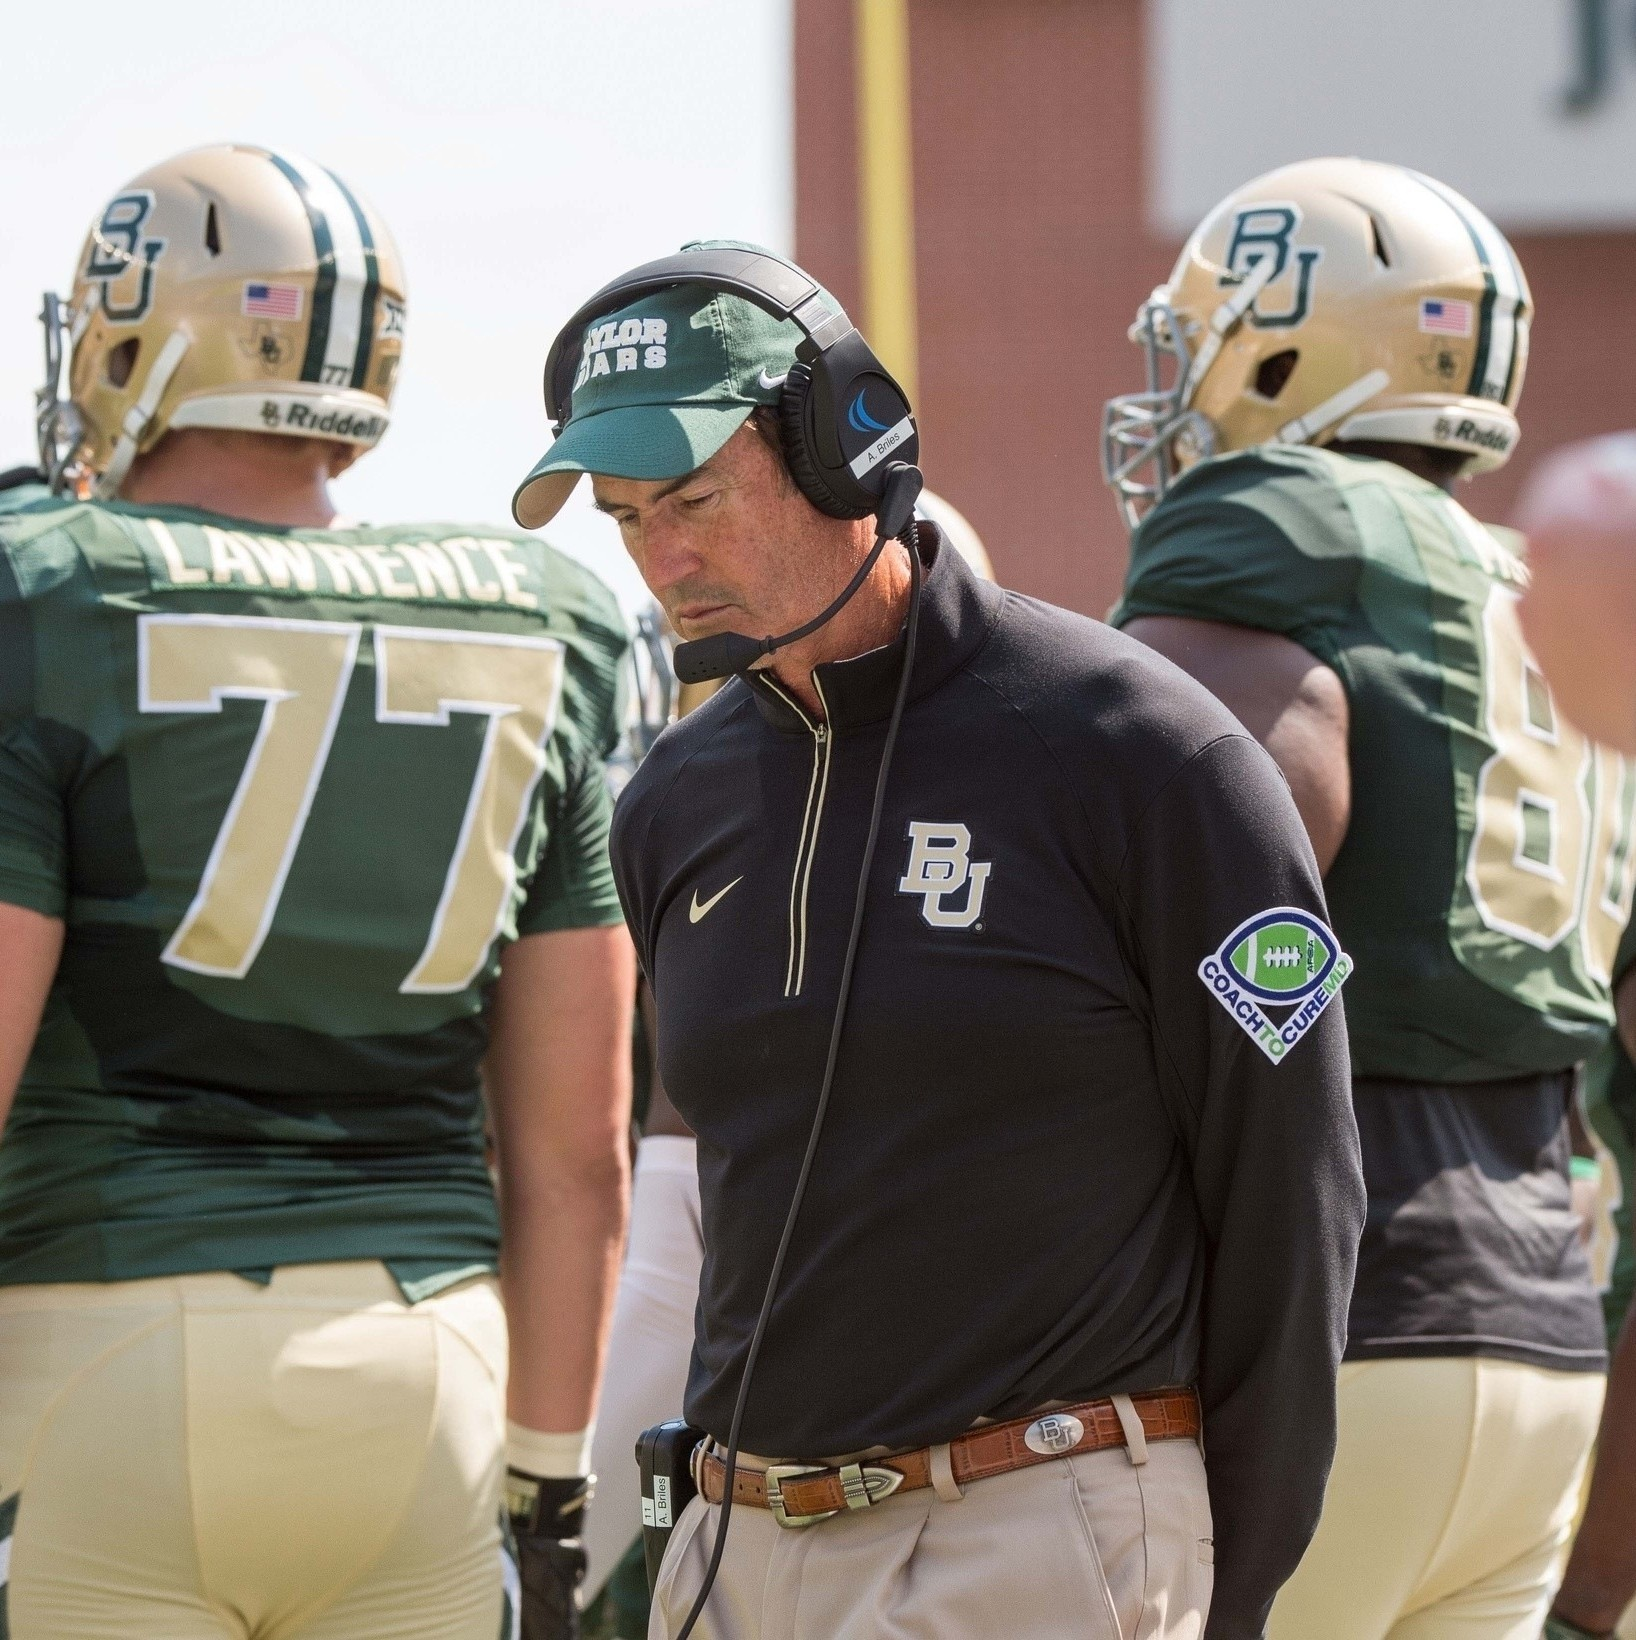 The-ncaa-should-ban-football-at-baylor-for-a-year-1464211665.jpg?crop=0.6640625xw:1xh;0